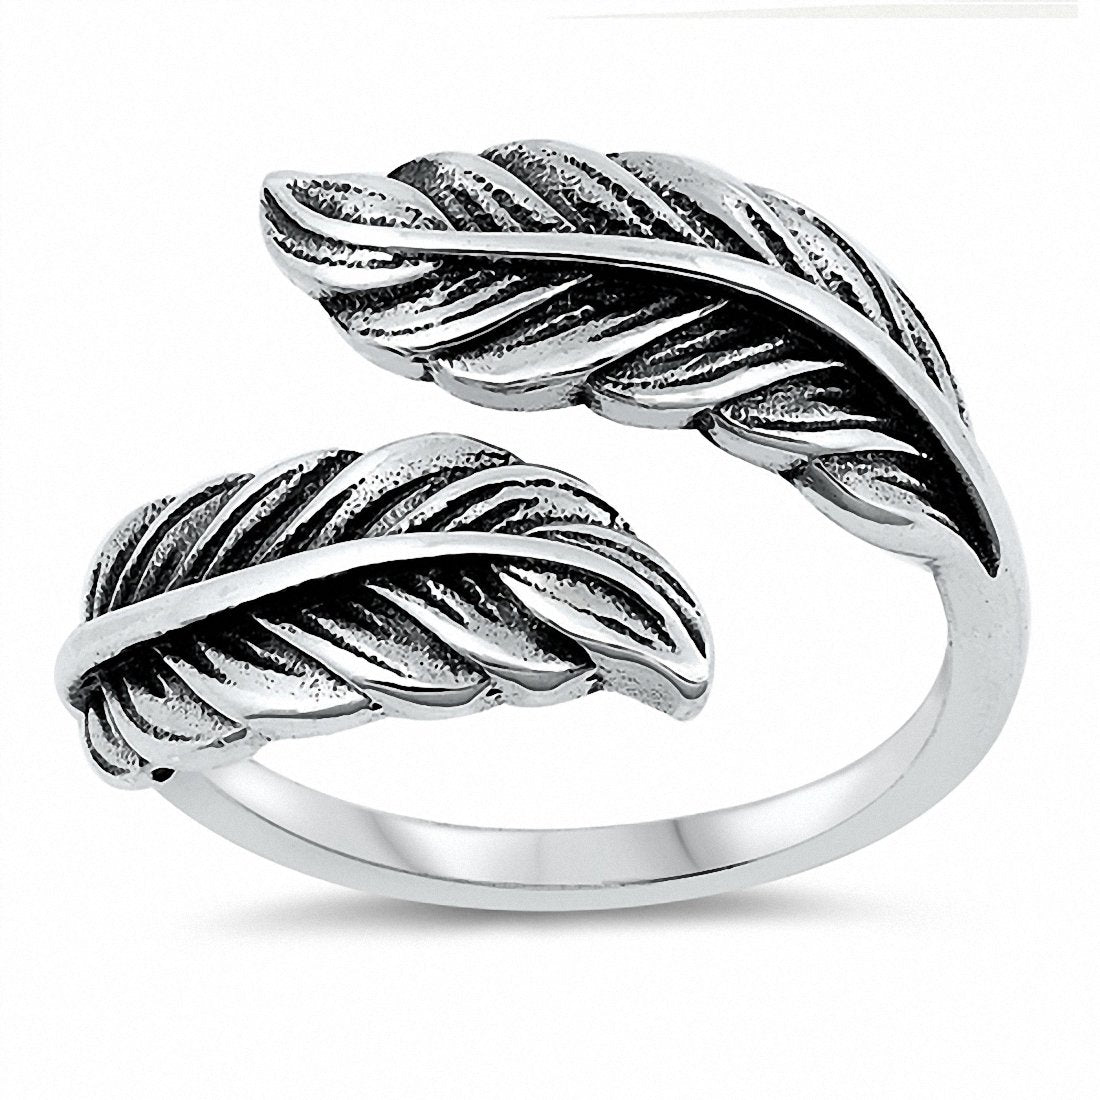 Feather Ring Band Solid 925 Sterling Silver Choose Color